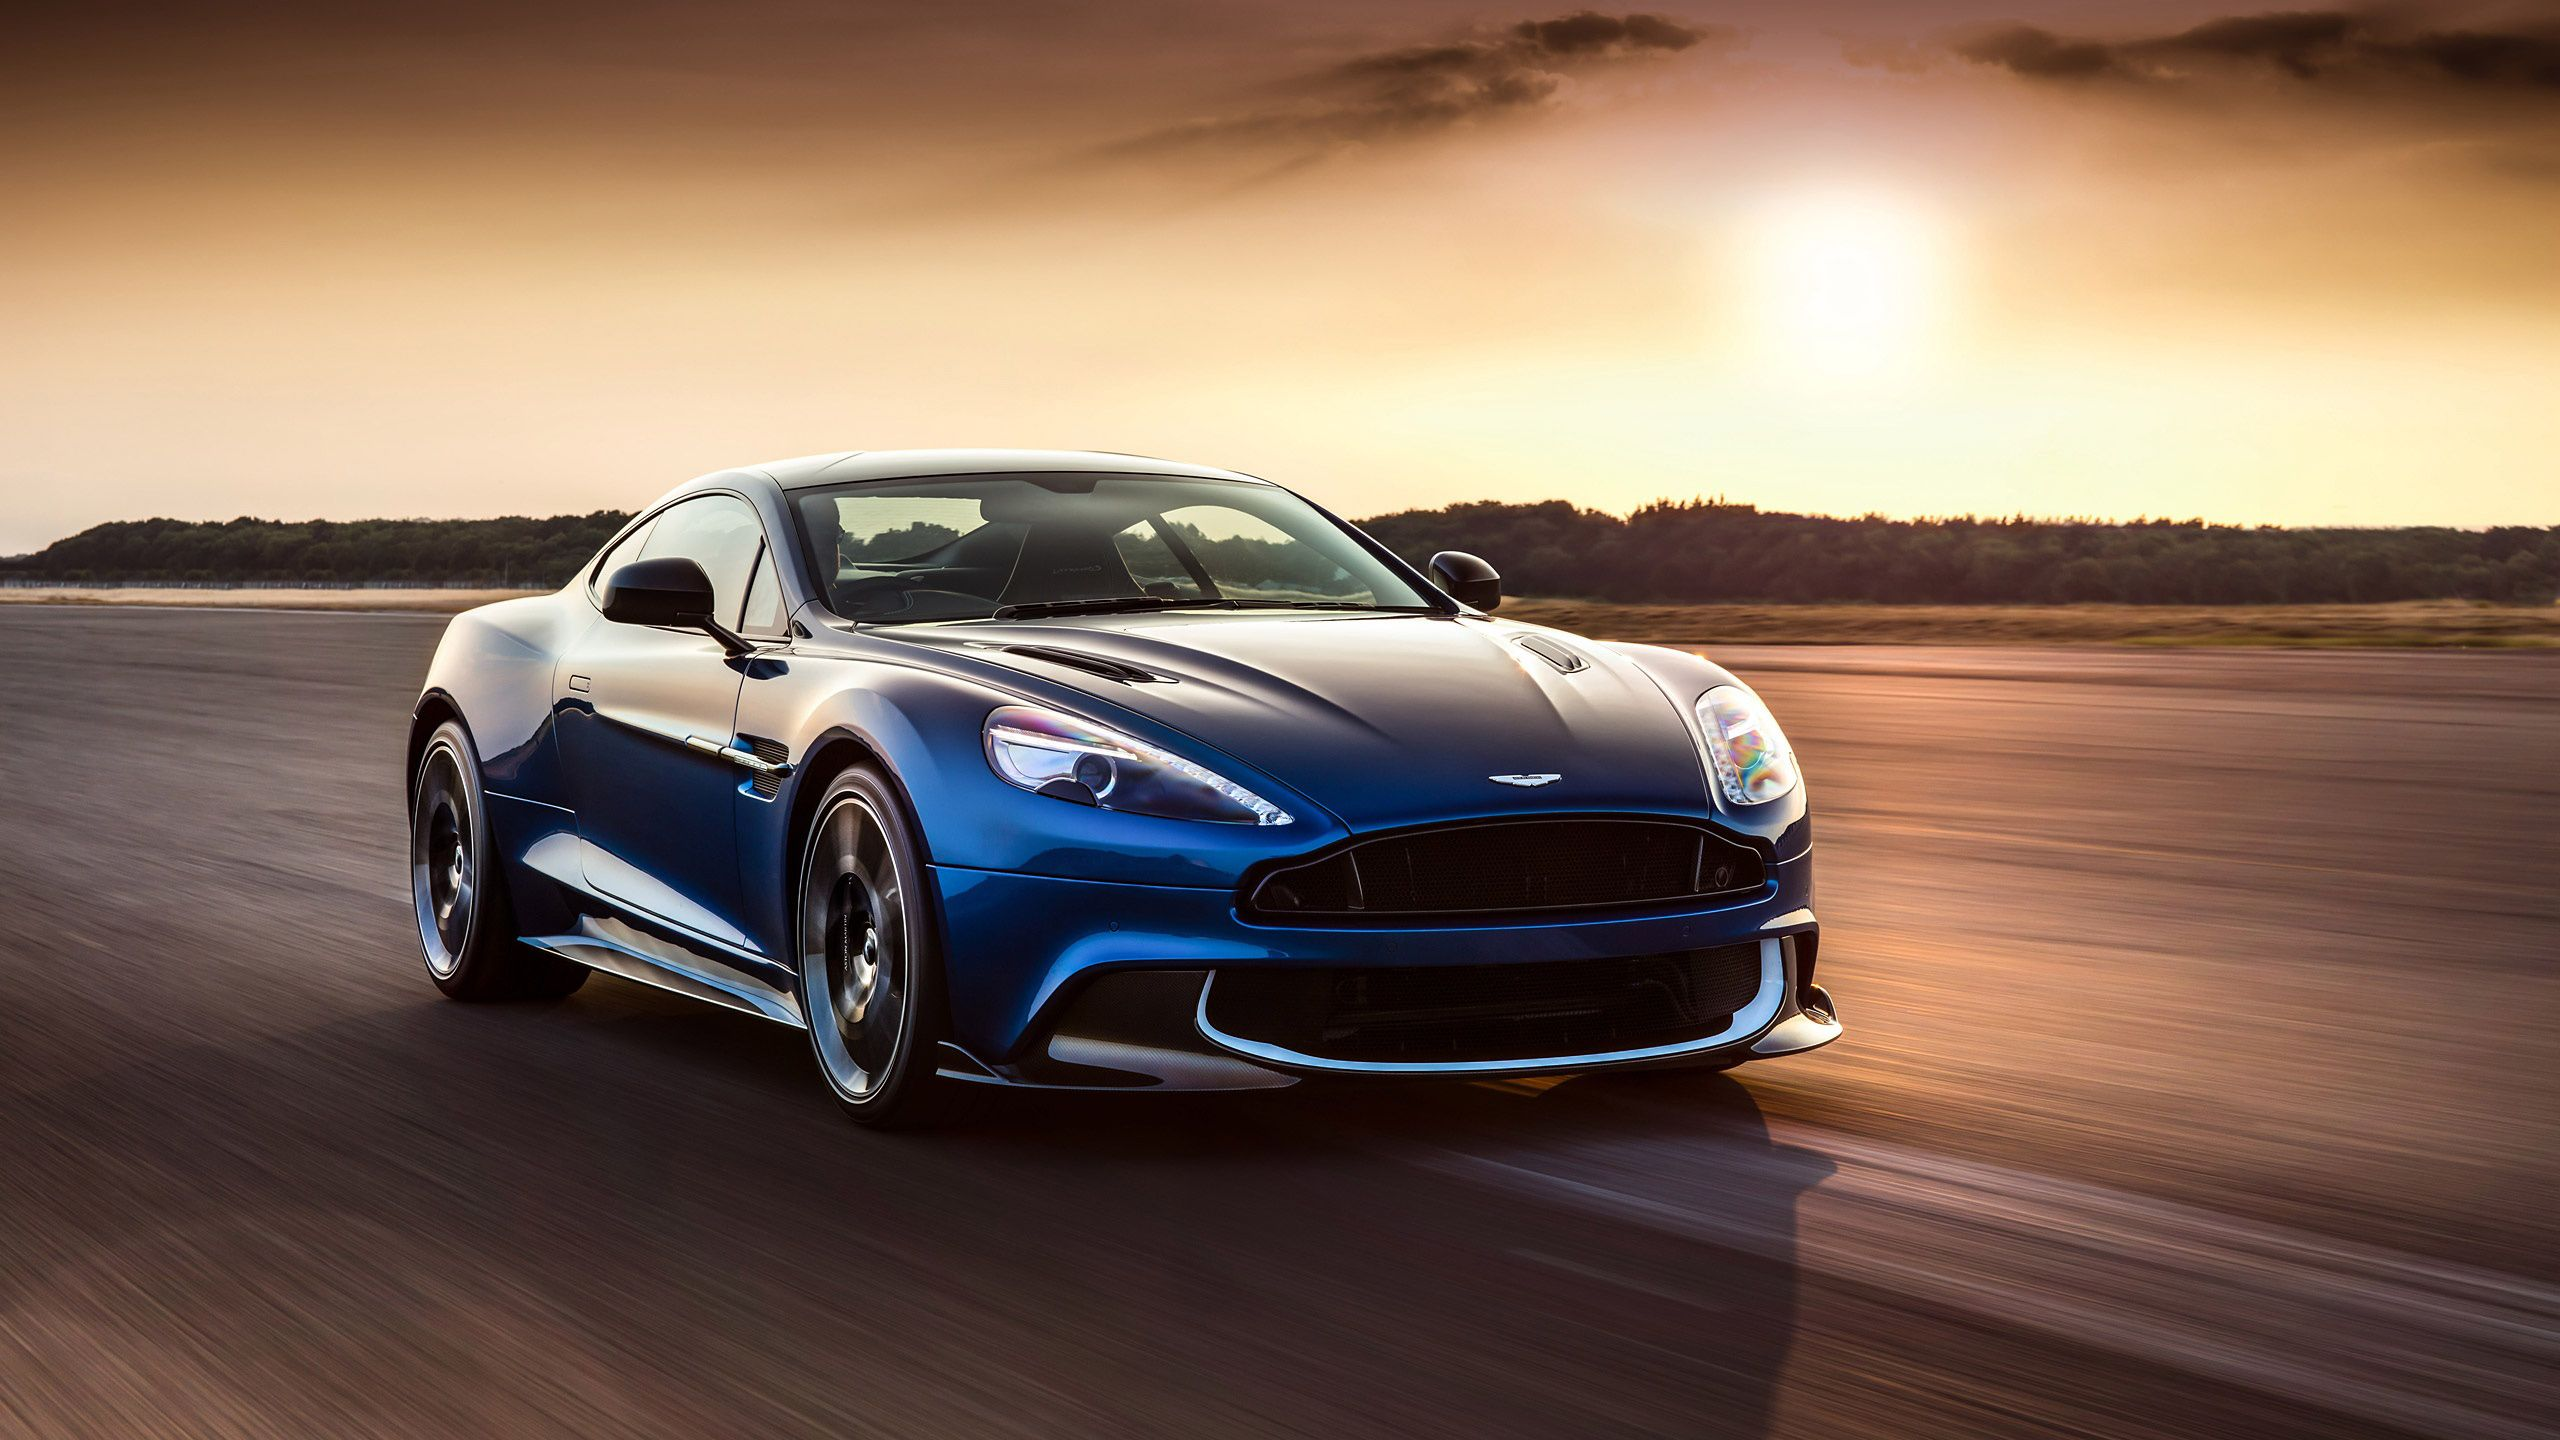 Aston Martin Car WallpapersPictures Widescreen 1600x1200 Vanquish Wallpapers 50